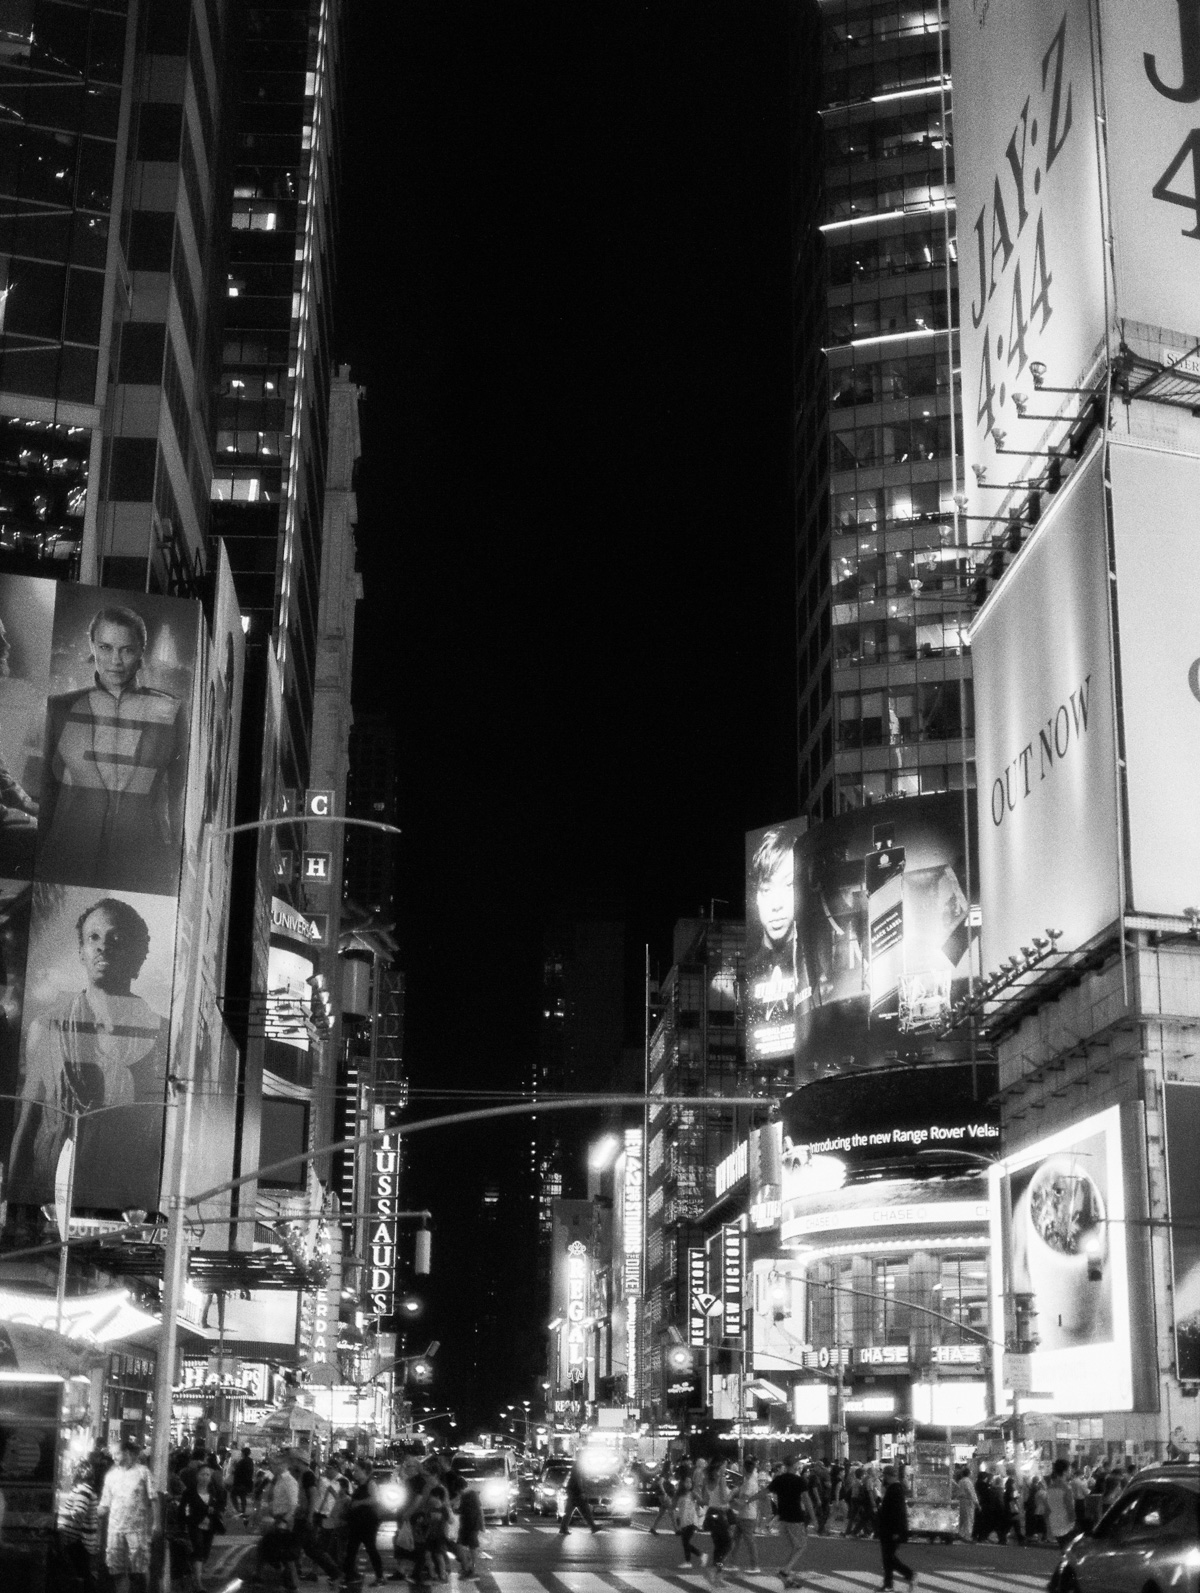 Times Square at night on black and white film, ilford delta 3200